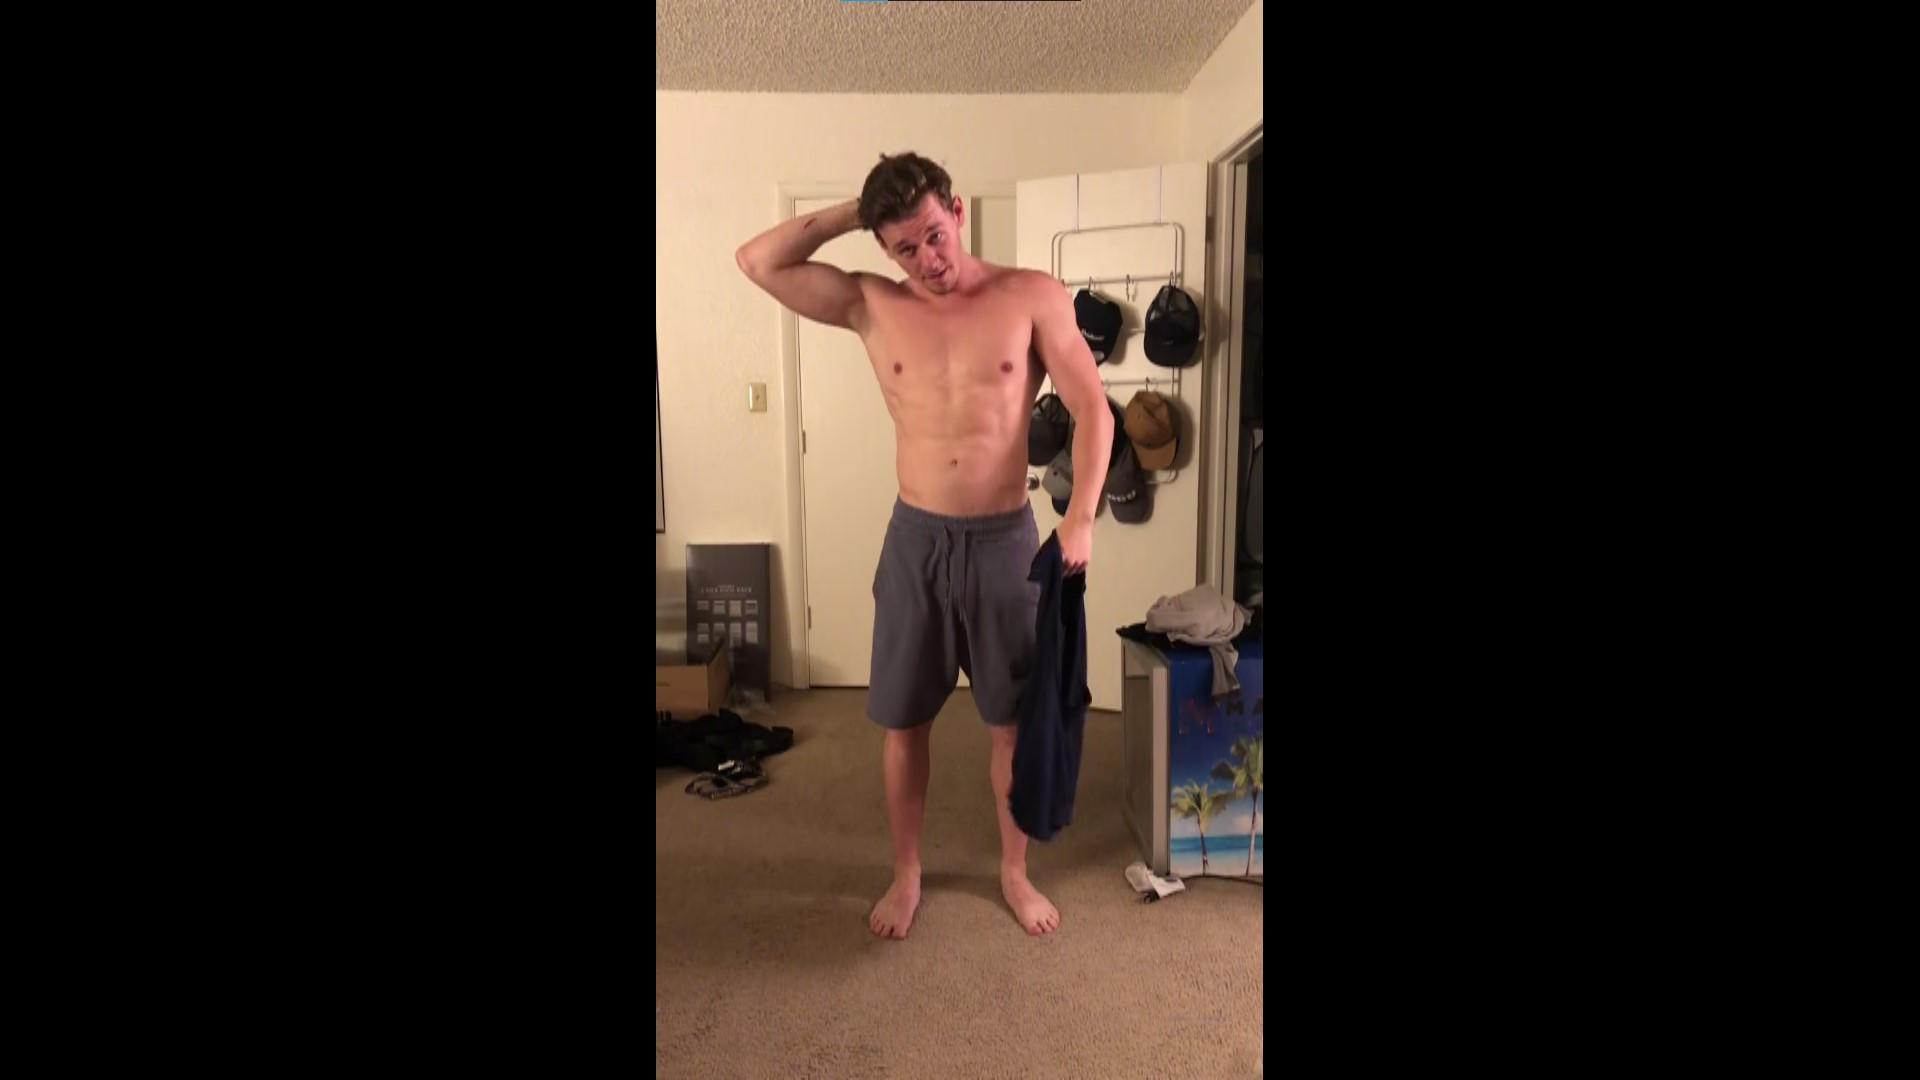 Slowly stripping and showing off my body - cdyrnkn